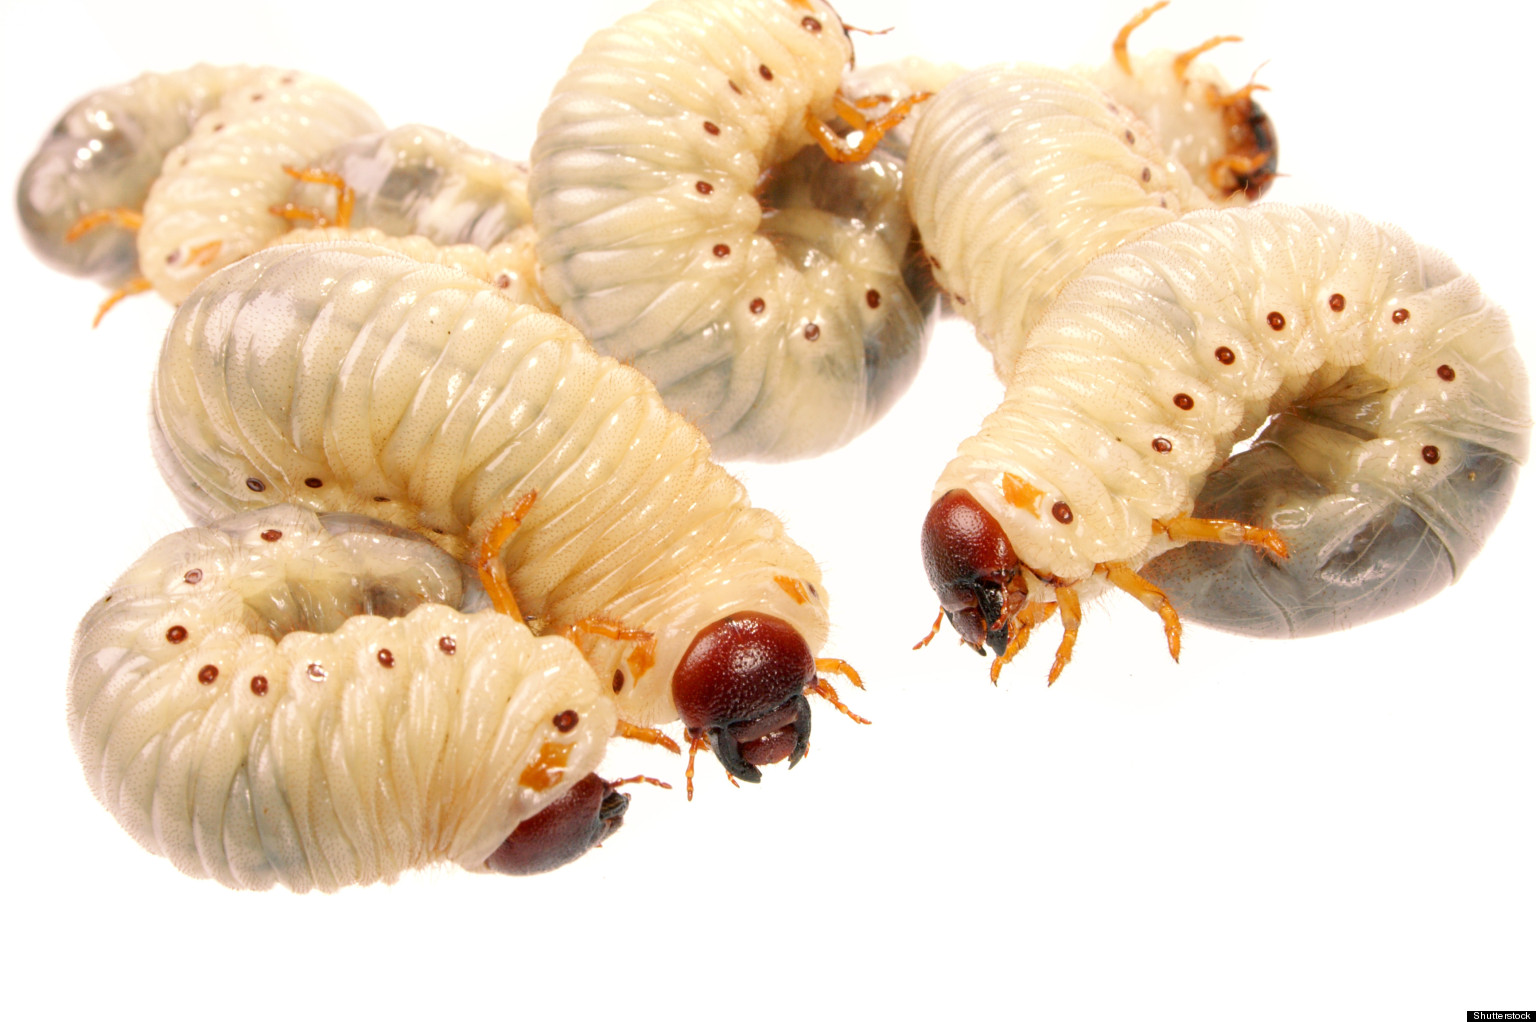 Maggots Heal Wounds By Suppressing Immune System, Study ...